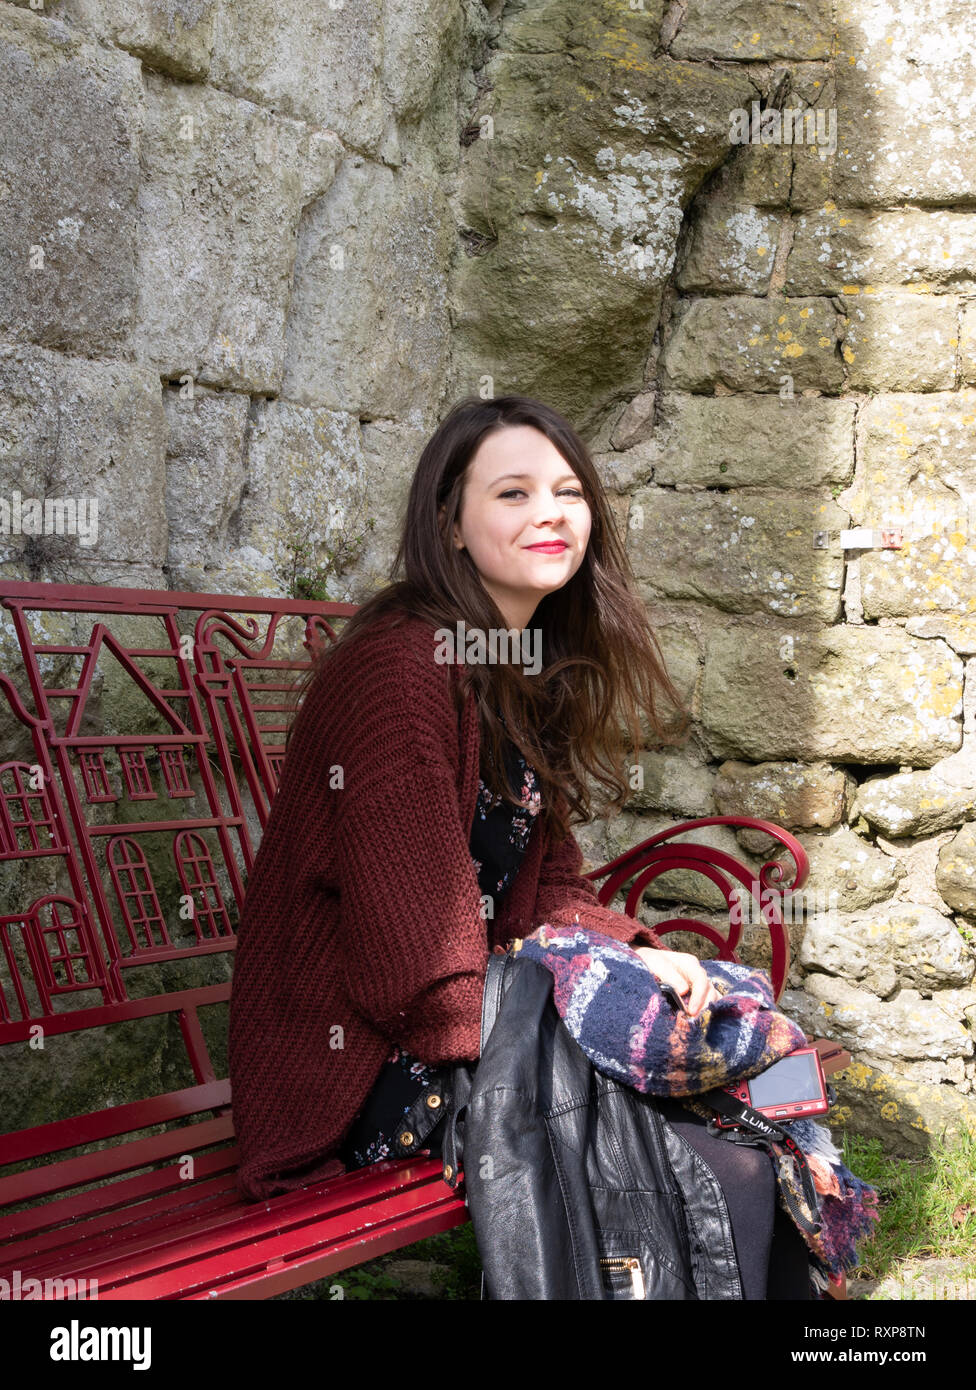 Girll / young lady, Gold hill ('Hovis' hill), Shaftesbury, Dorset, UK - Stock Image